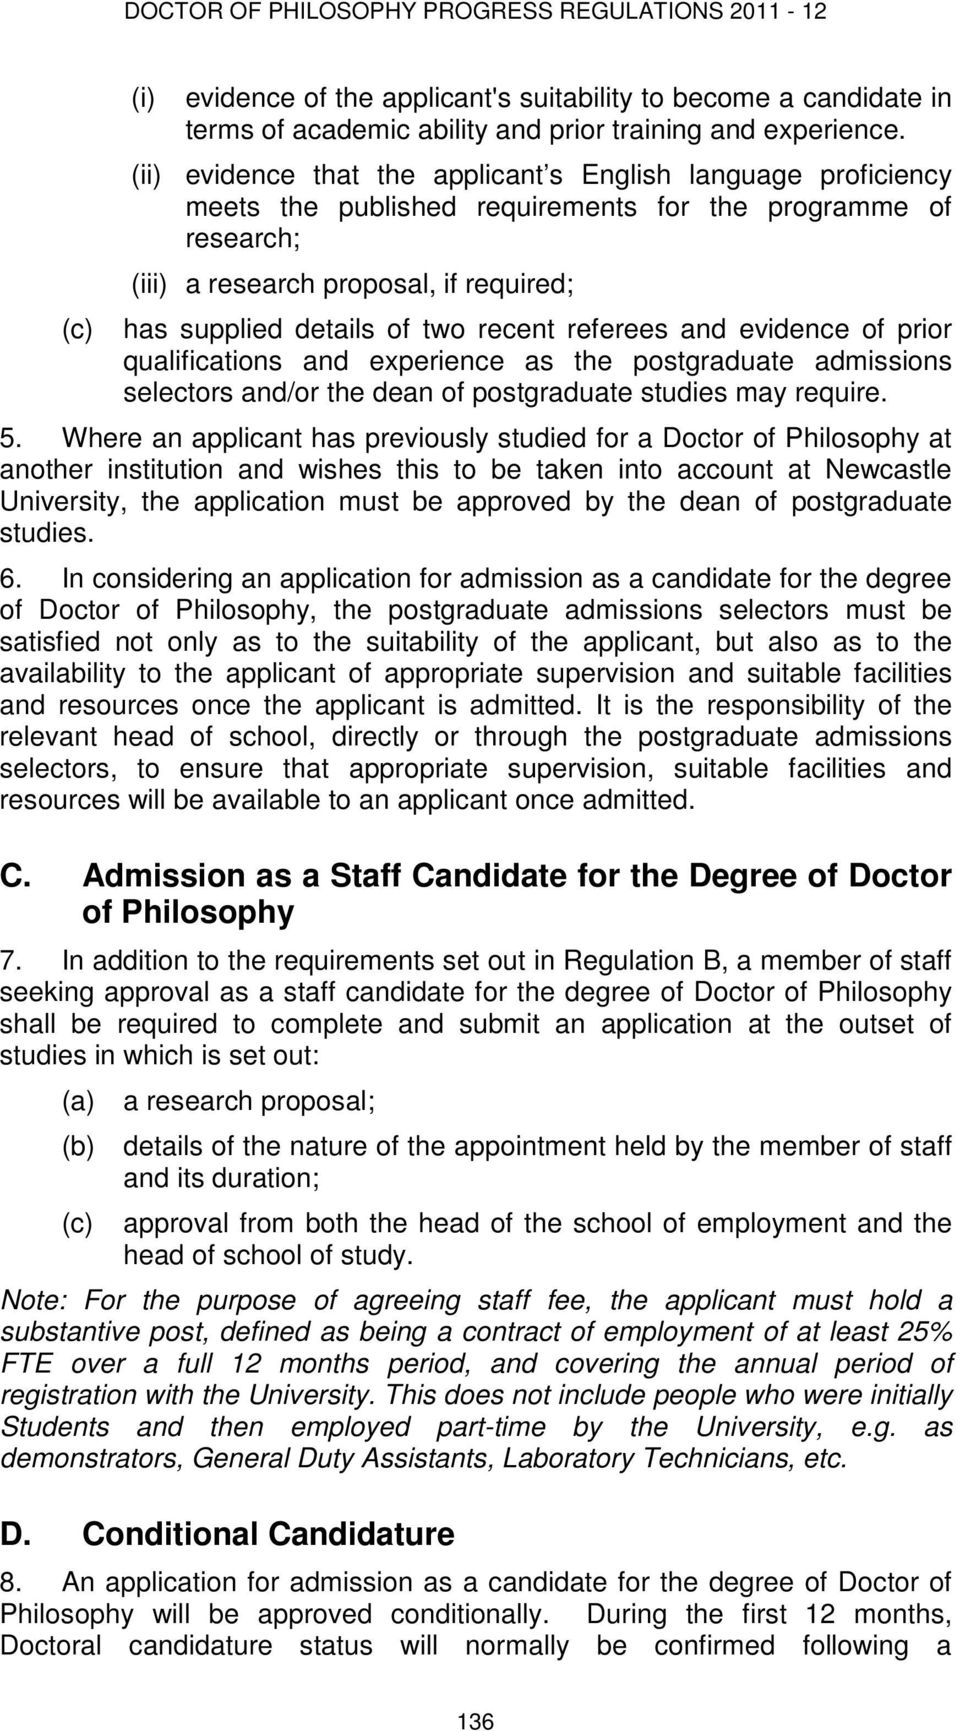 recent referees and evidence of prior qualifications and experience as the postgraduate admissions selectors and/or the dean of postgraduate studies may require. 5.